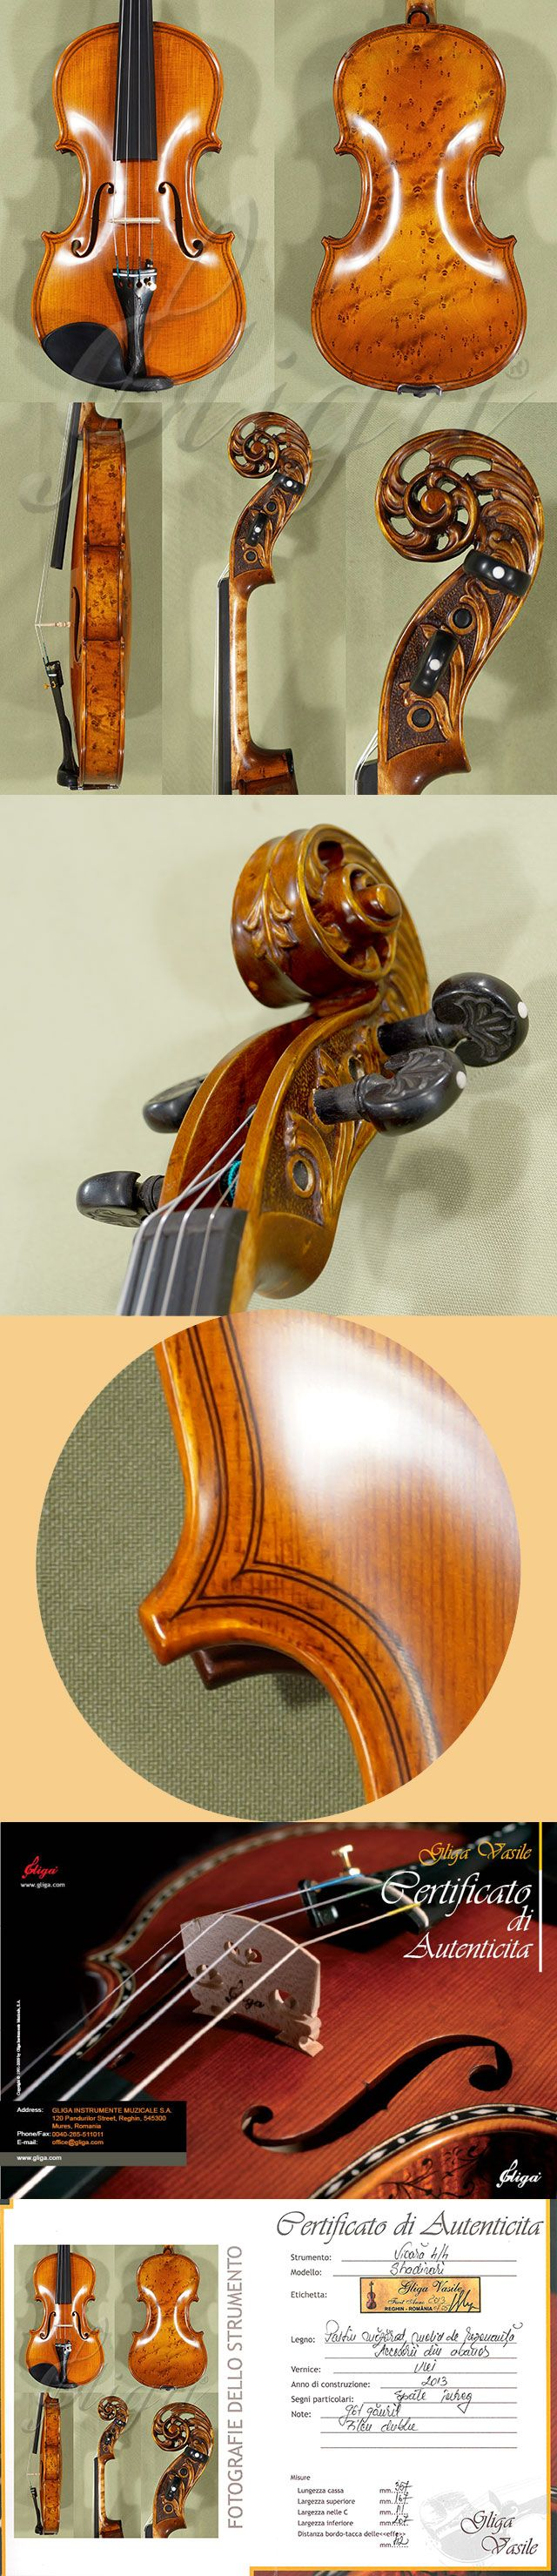 4/4 MAESTRO VASILE GLIGA Inlaid Double Purfling Scroll Bird's Eye Maple One Piece Back Violin